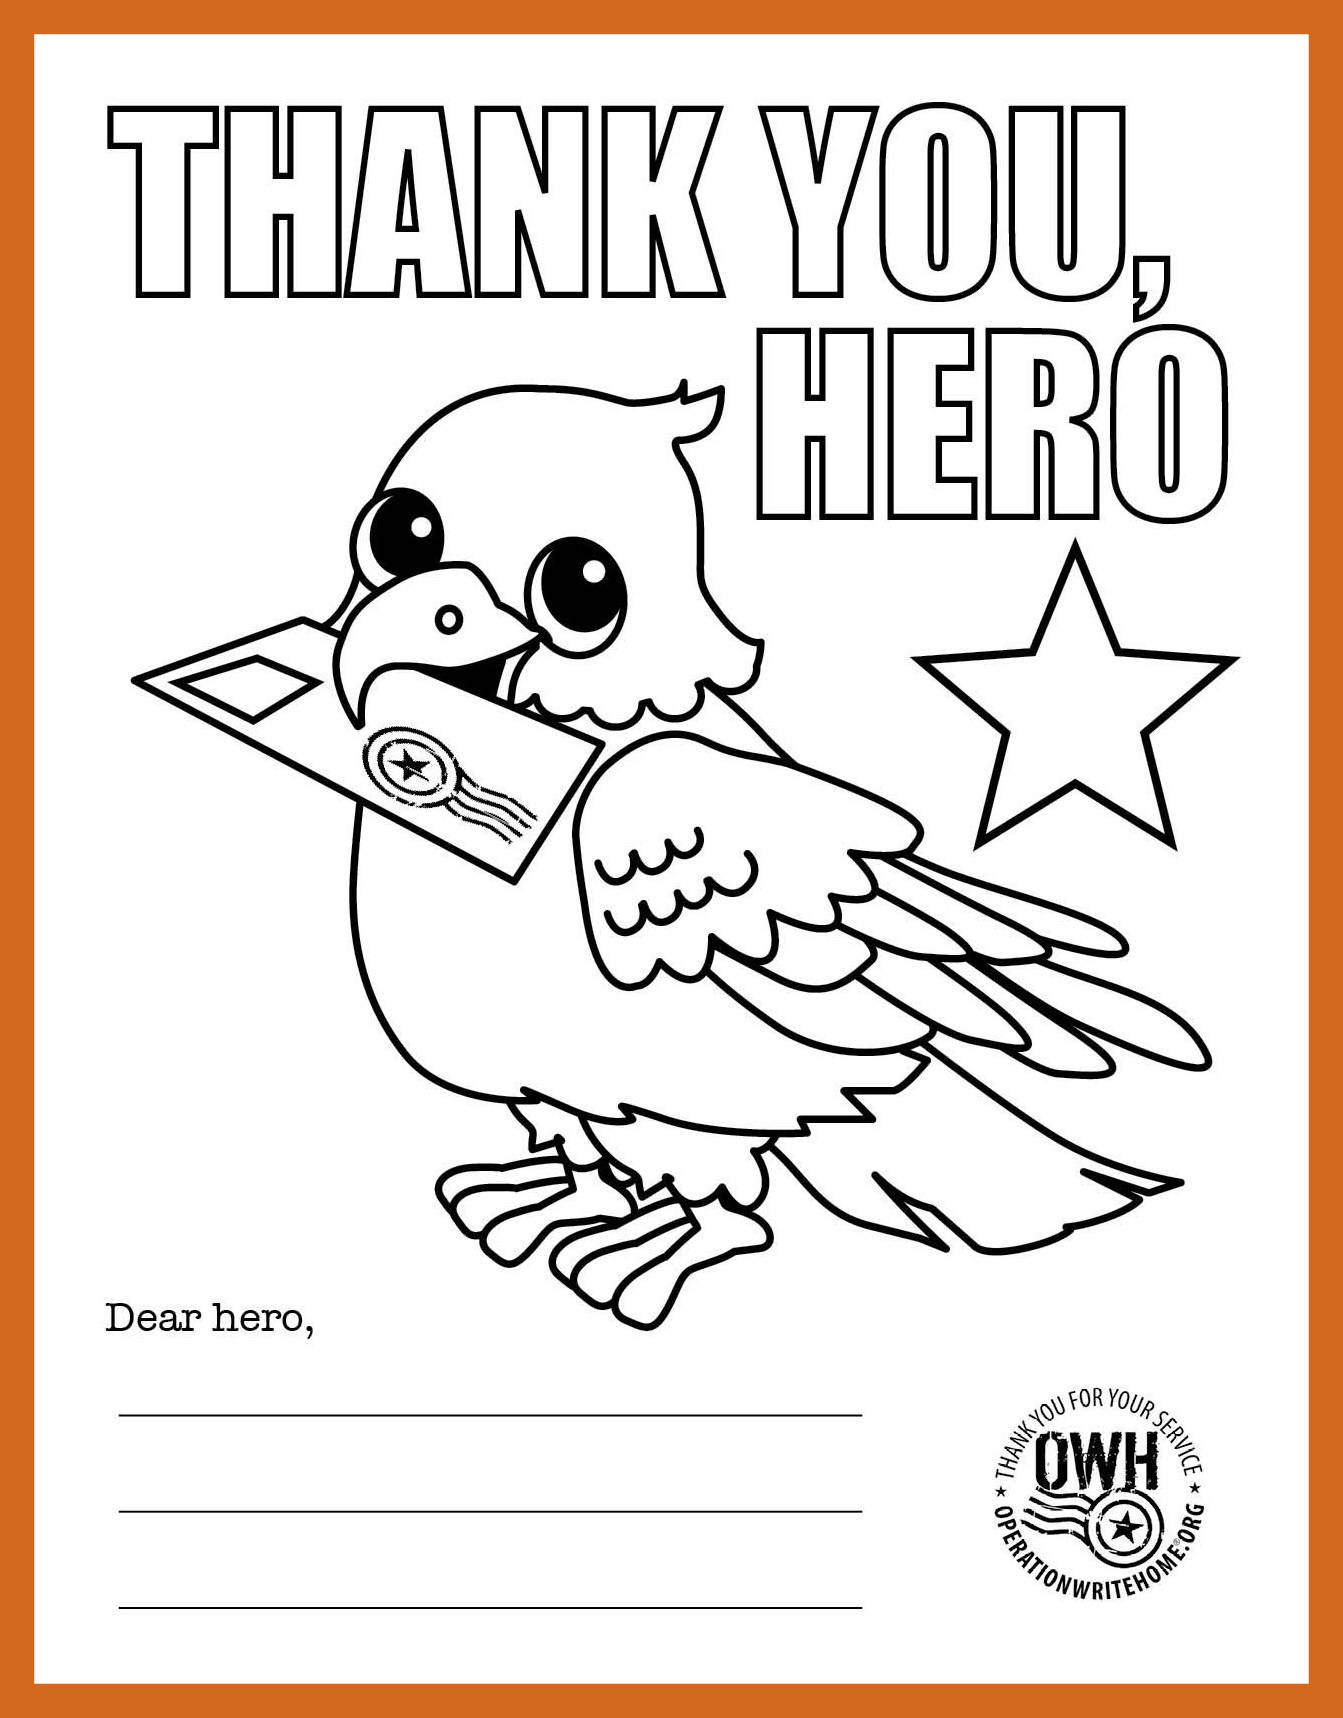 Military Helicopter Coloring Pages At Getcolorings